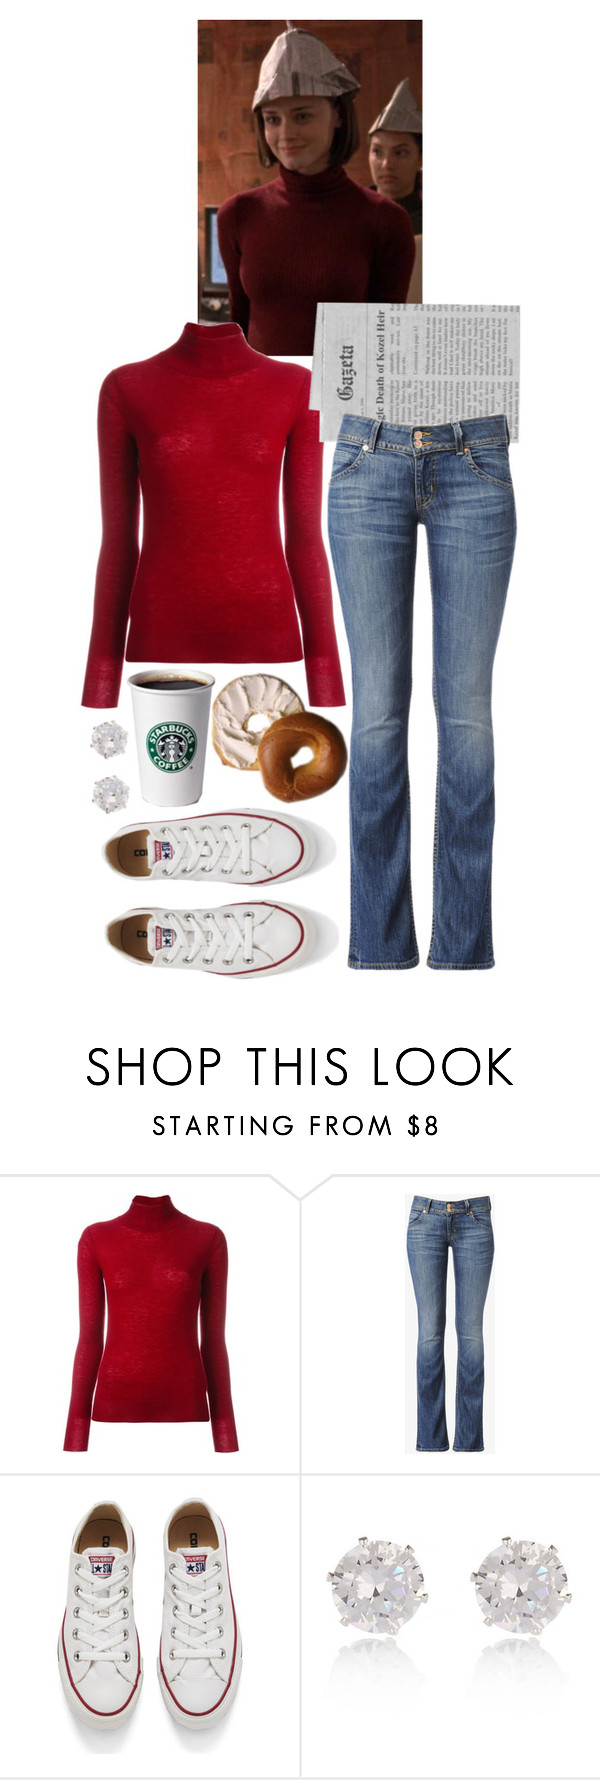 Rory Gilmore Style By Sewing Girl  E2 9d A4 Liked On Polyvore Featuring Joseph Hudson Jeans And Converse